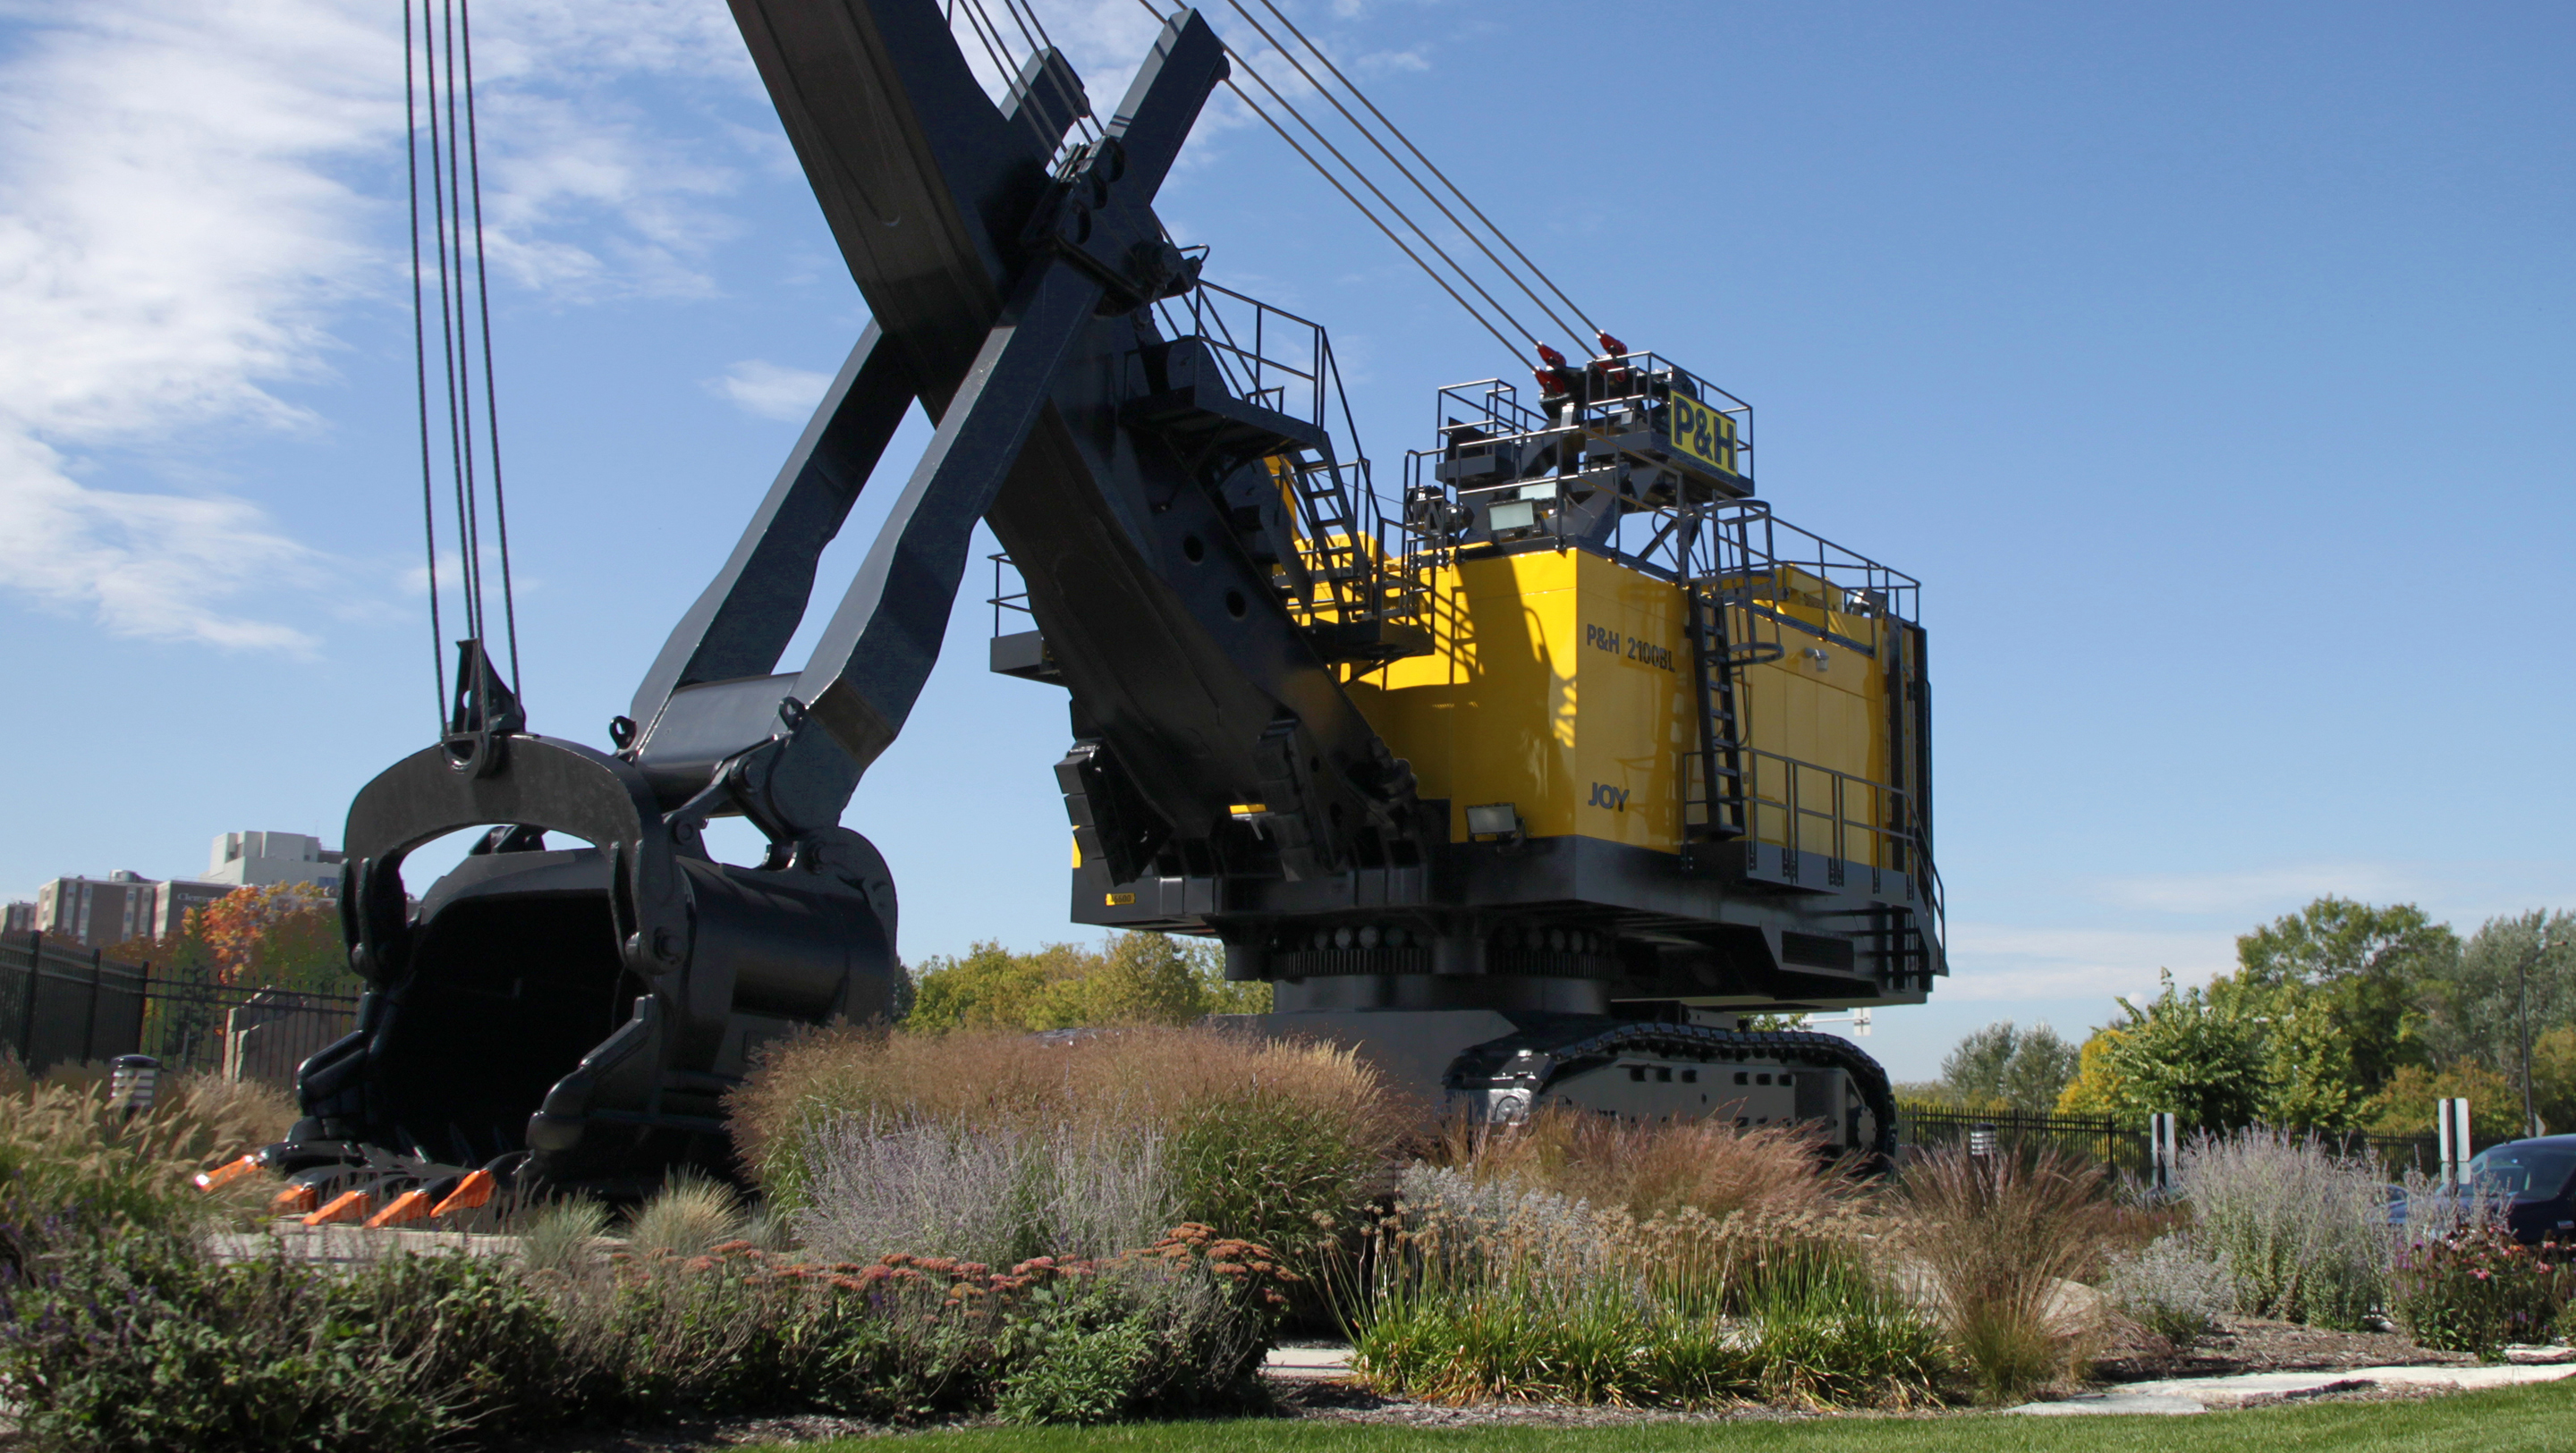 Saiki Design was responsible for finding a visible and integrated pad for a 51-foot-tall shovel on site; the iconic gesture instantly became a neighborhood landmark and icon.